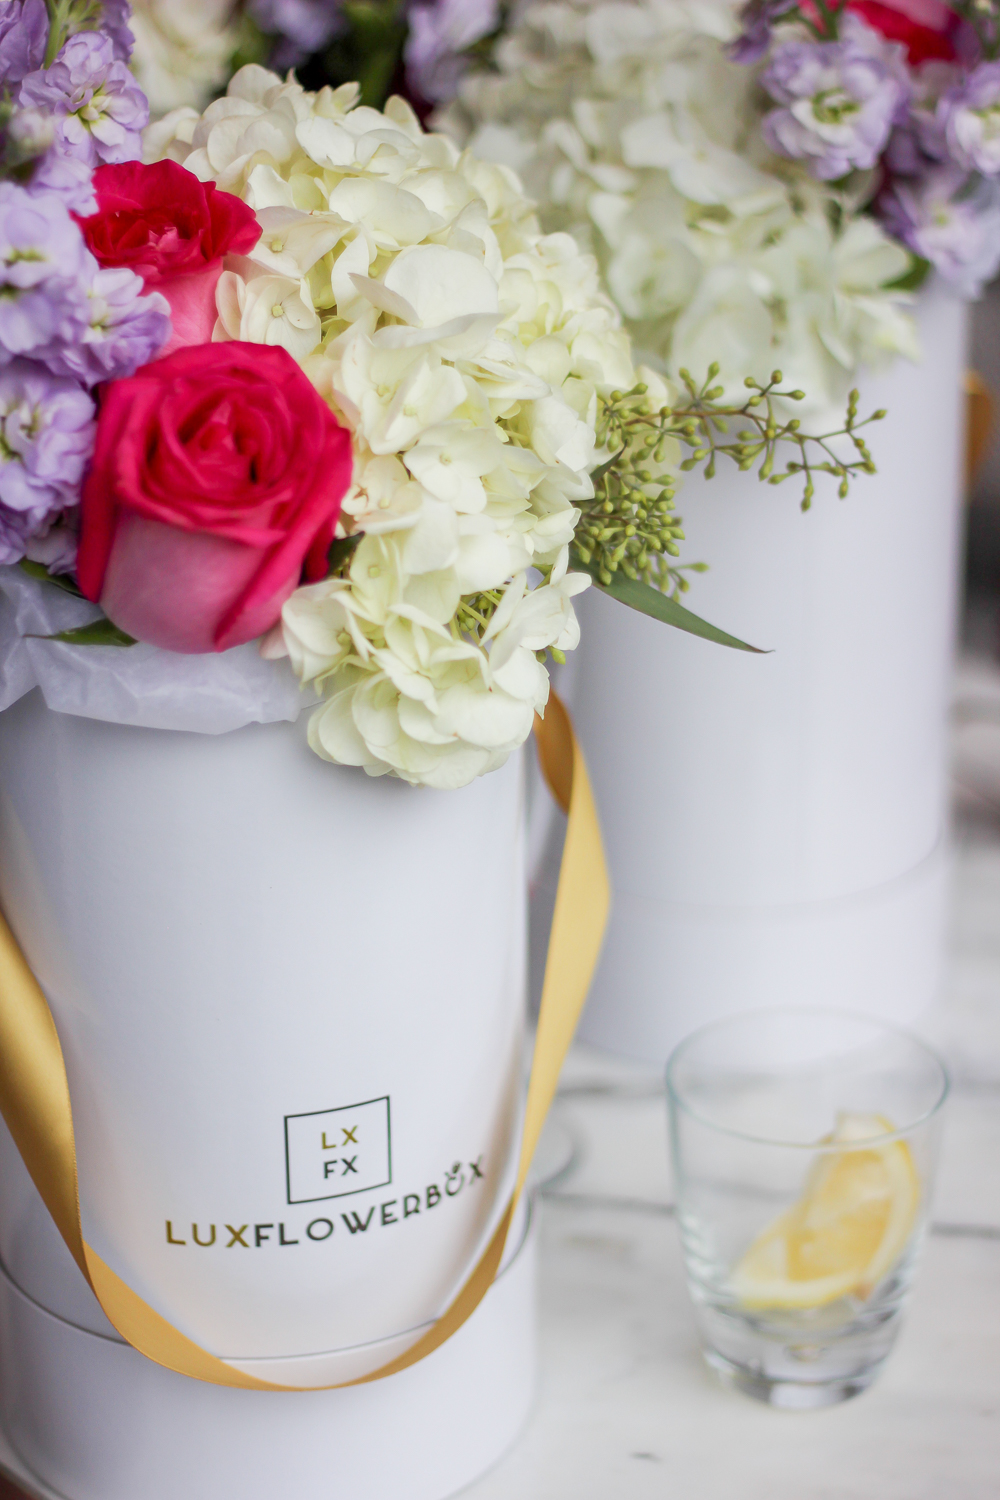 Lux Flower Box premium flower arrangements